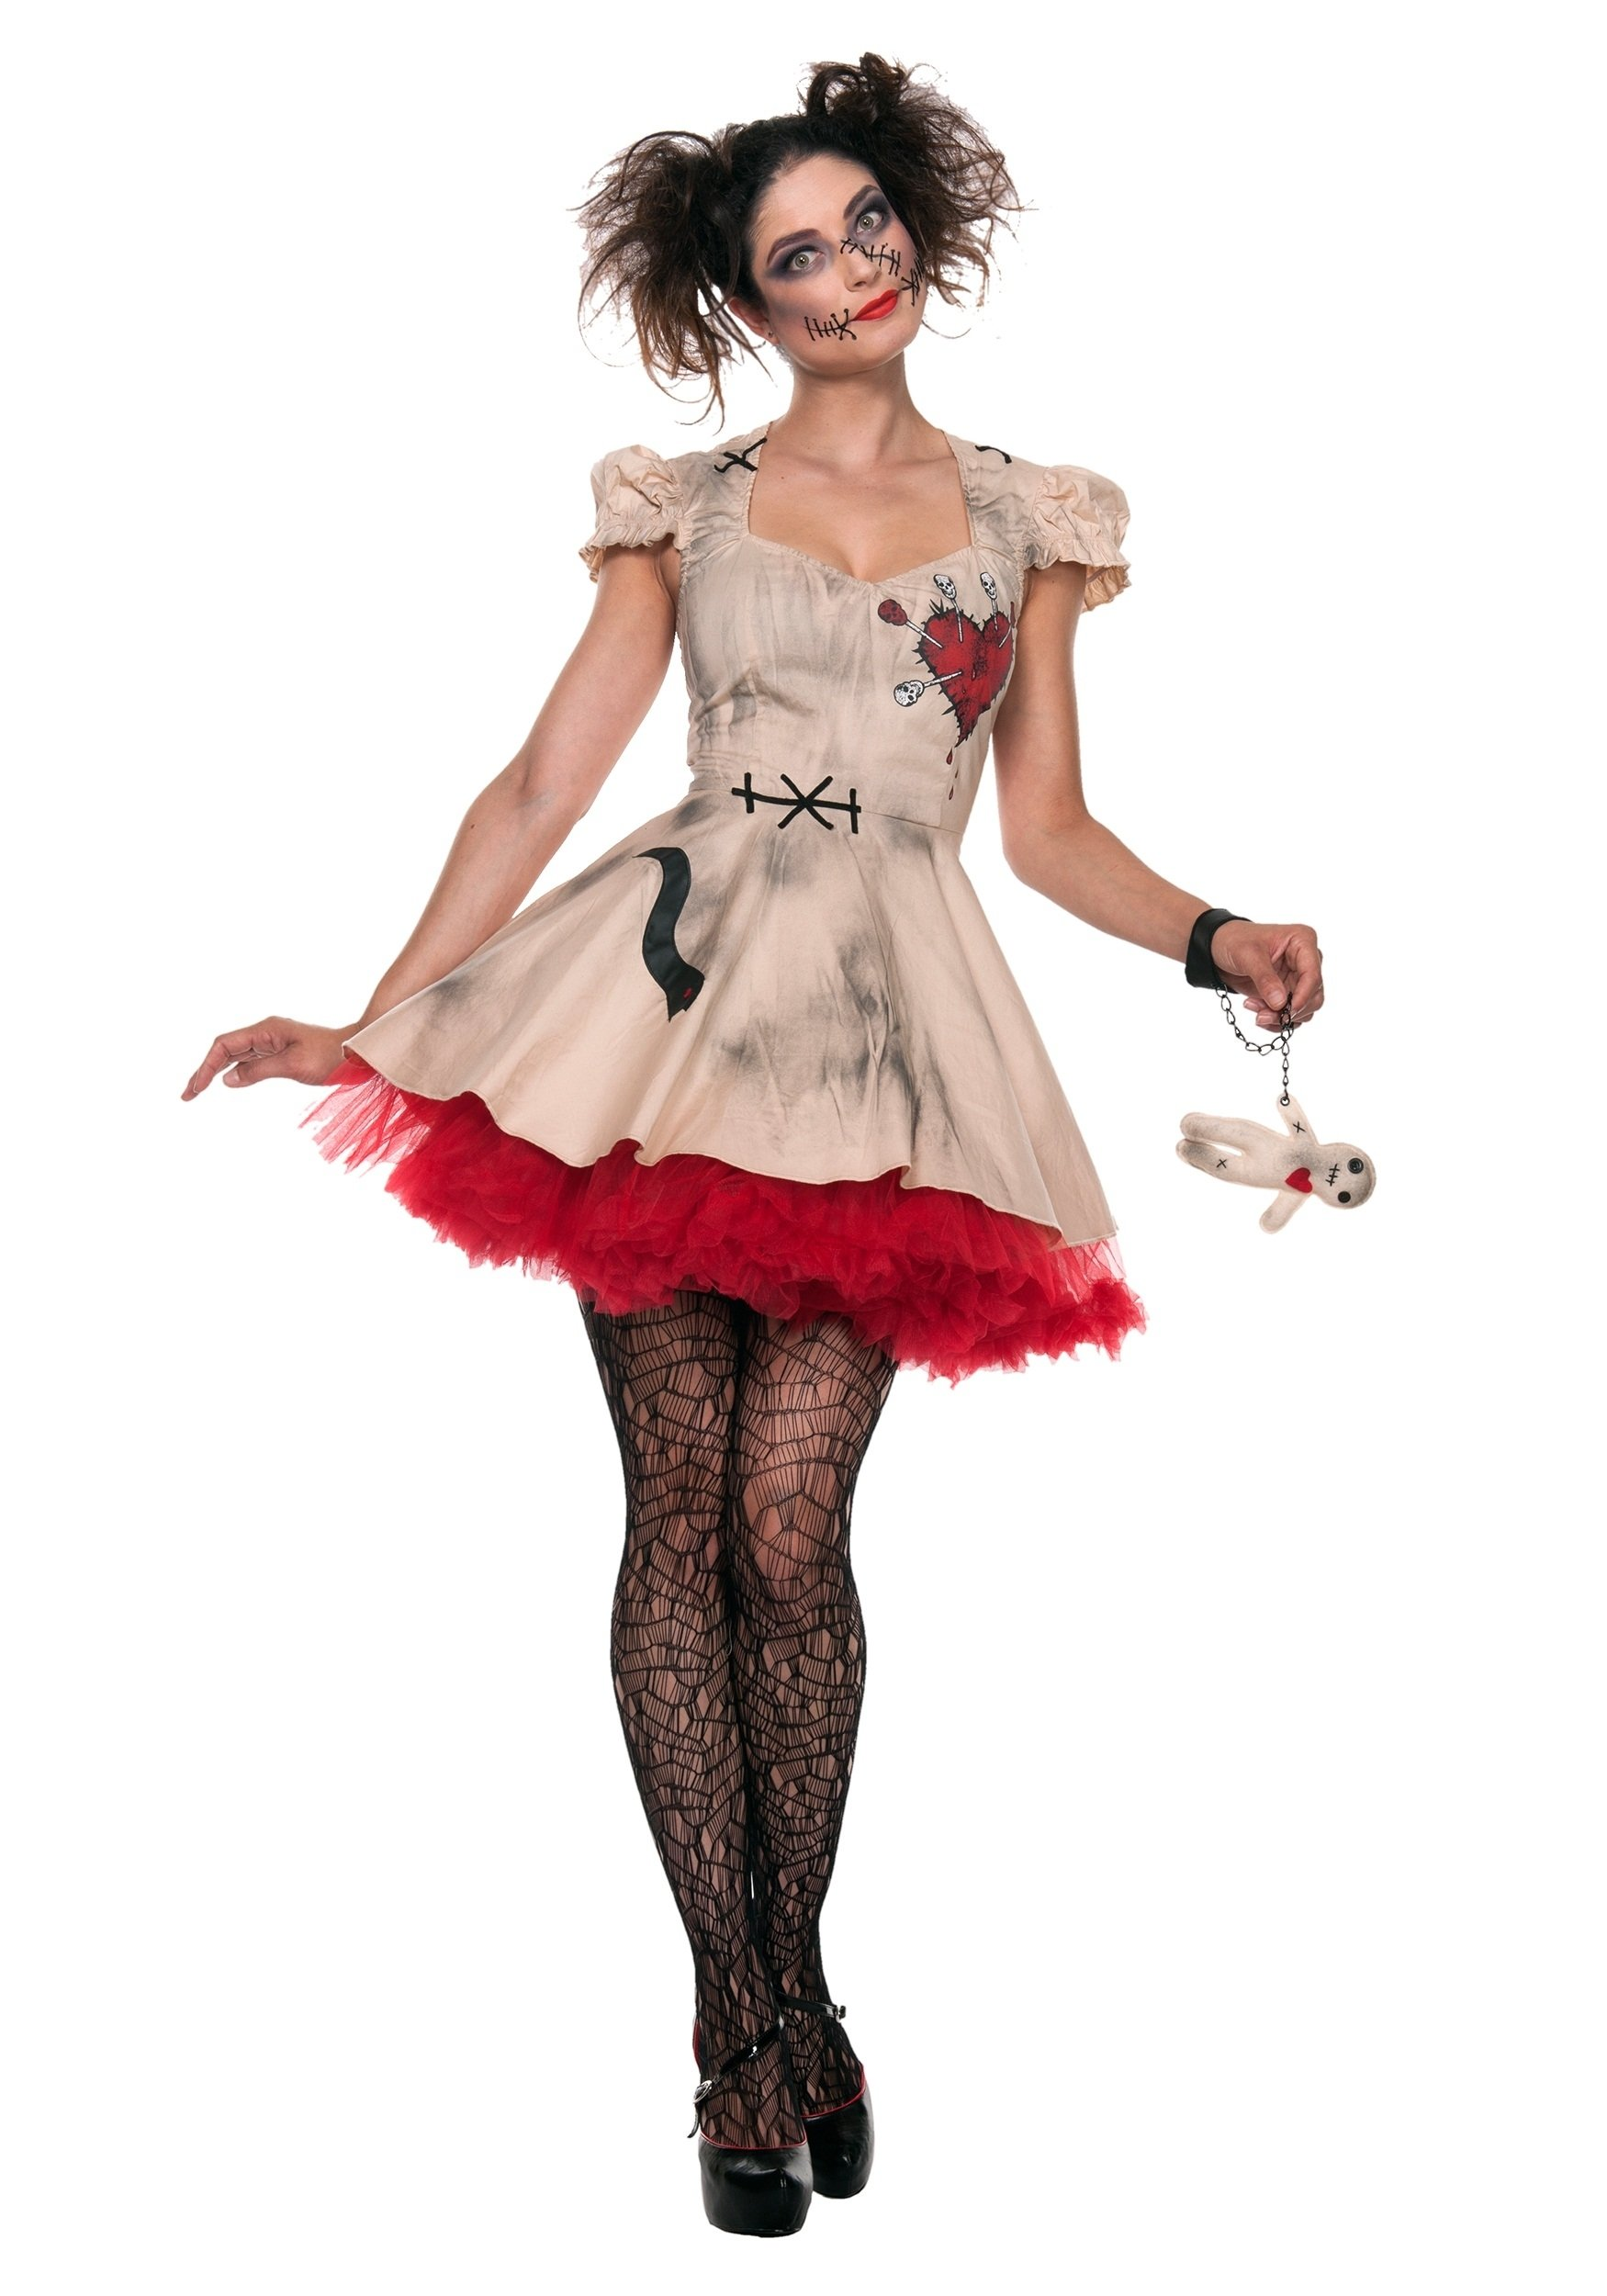 10 Stunning Halloween Costumes For Women Ideas womens plus size voodoo doll costume 3 2020